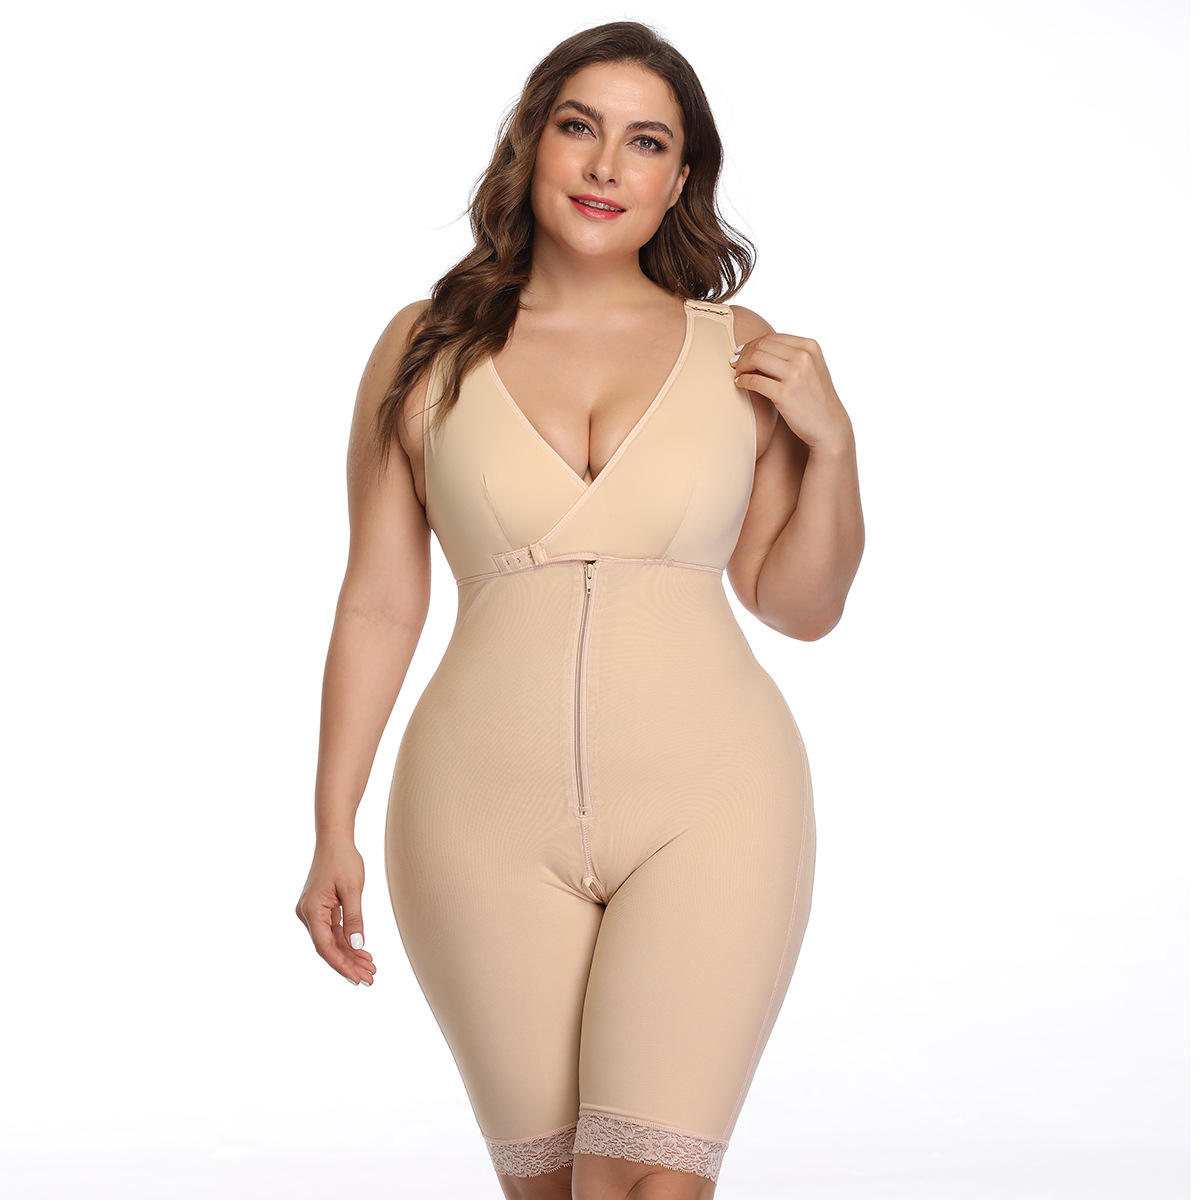 Tummy Shapewear 6XL Breathable Invisible Shapewear Butt Lifter Slimming Thigh Girdle Full Body Shaper